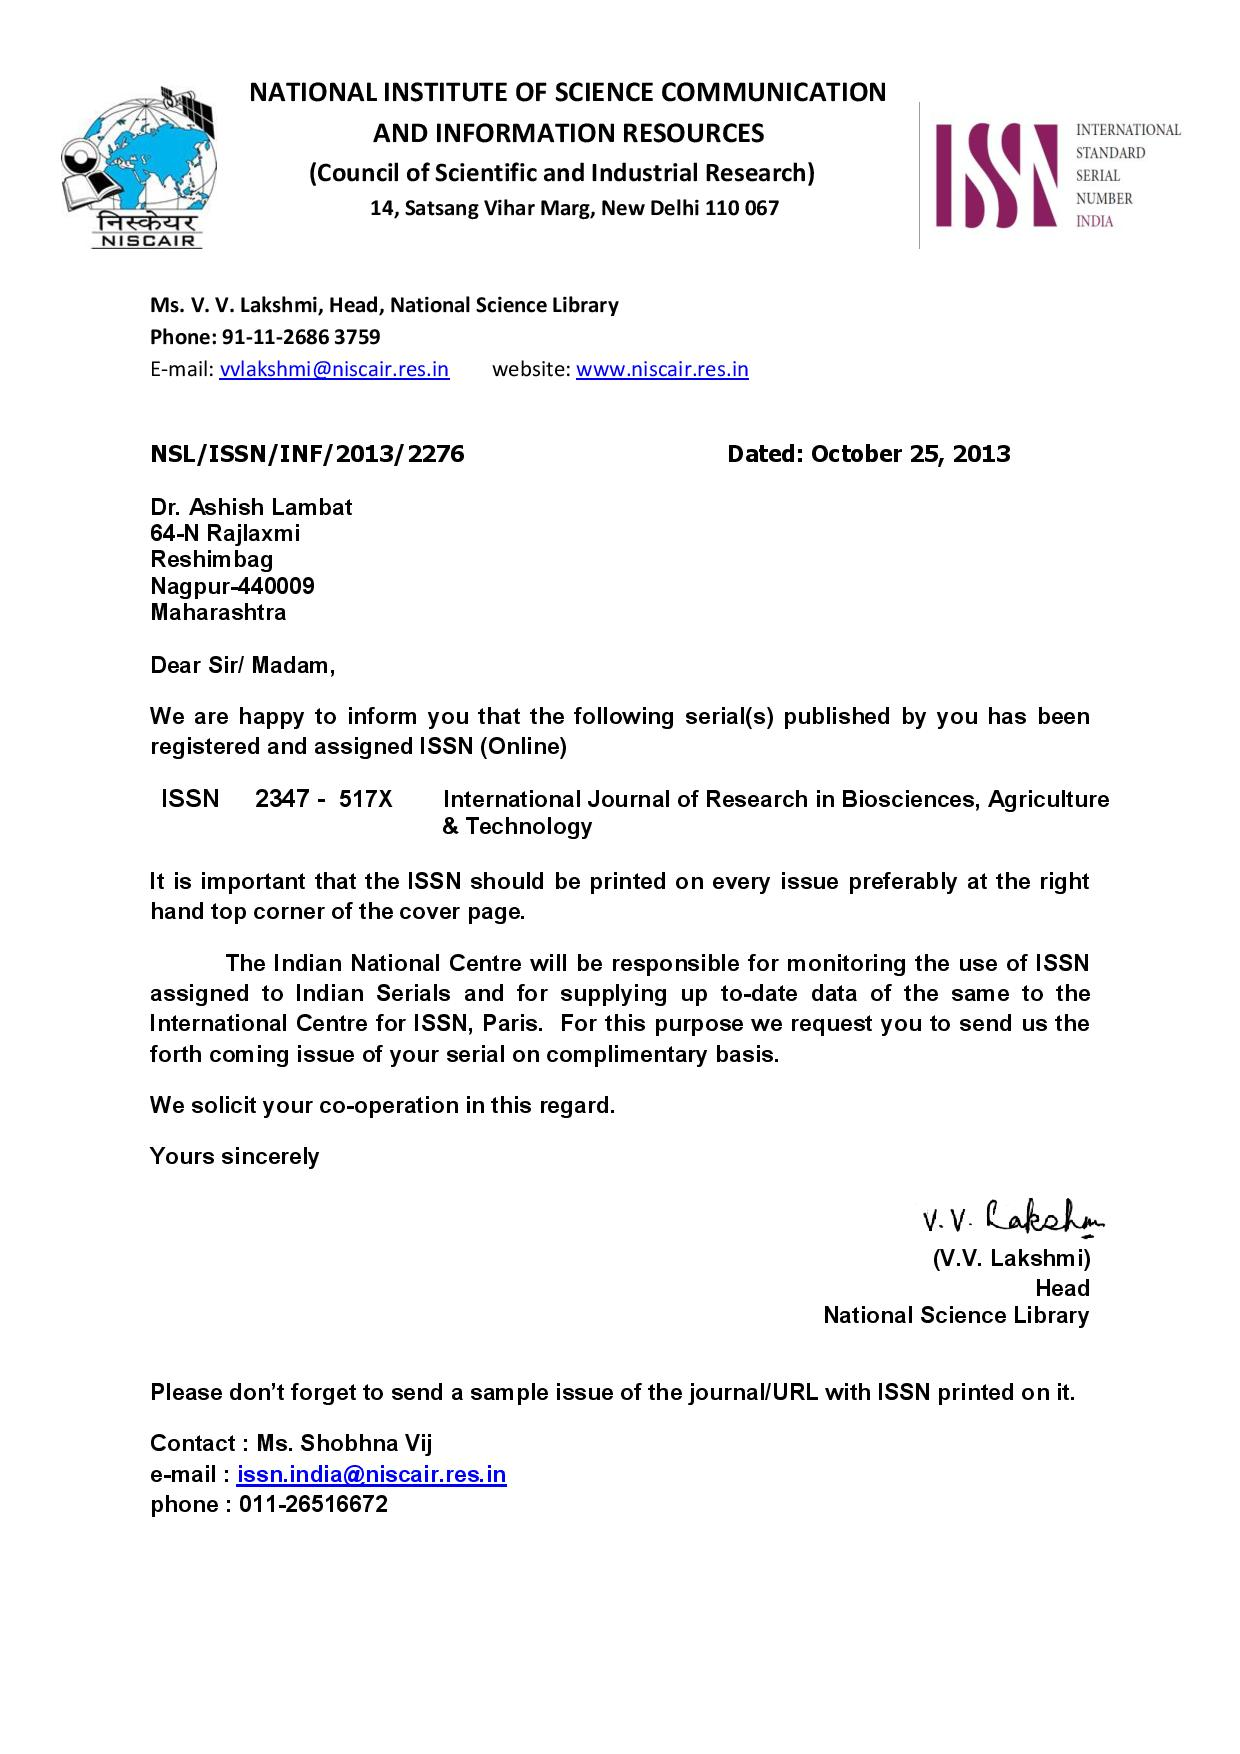 Sanctioned ISSN No. Letter(English)